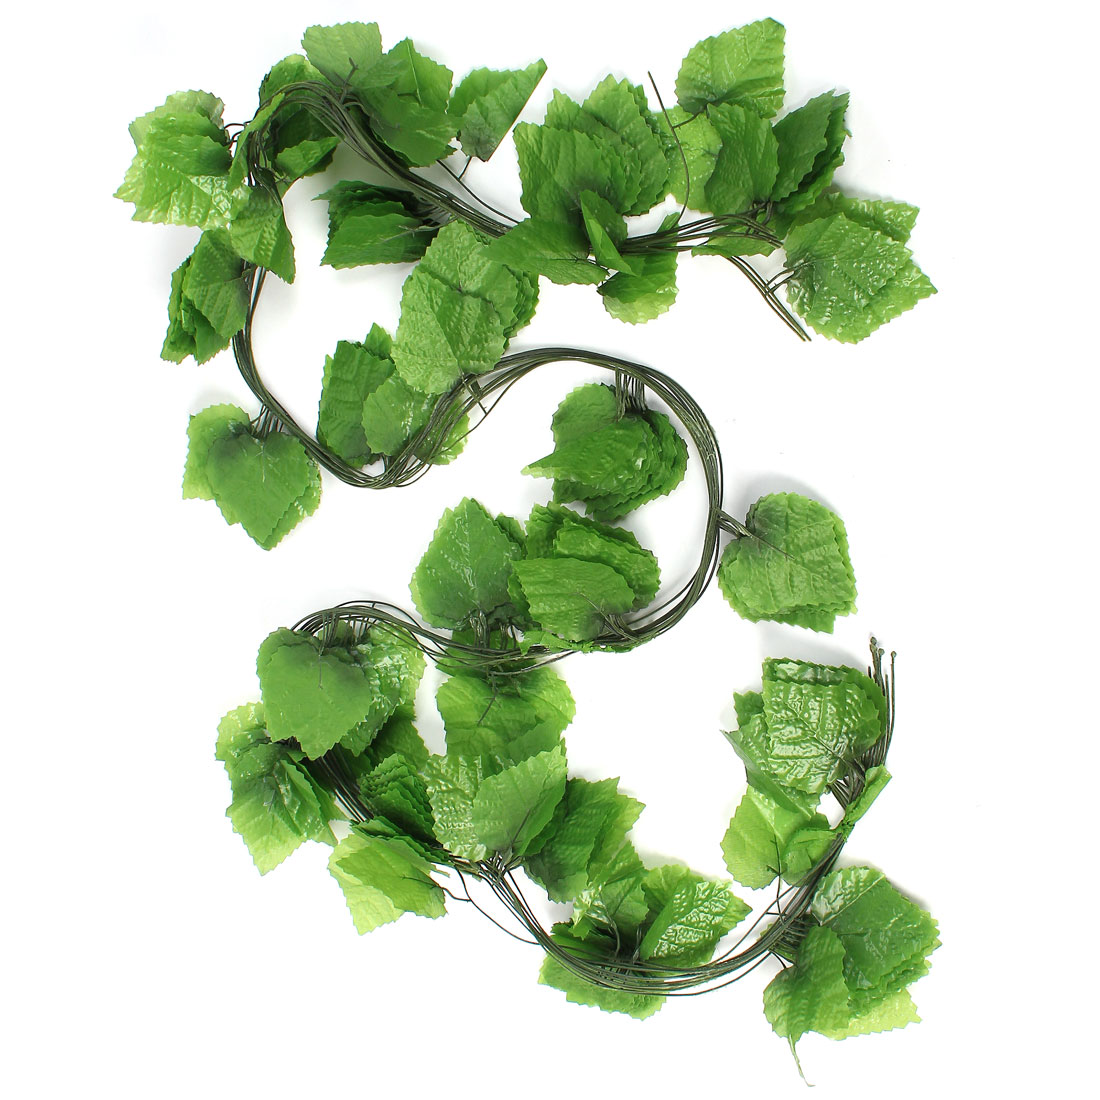 12 Pcs 2.5M Long Artificial Green Fabric Grape Leaves Decoration